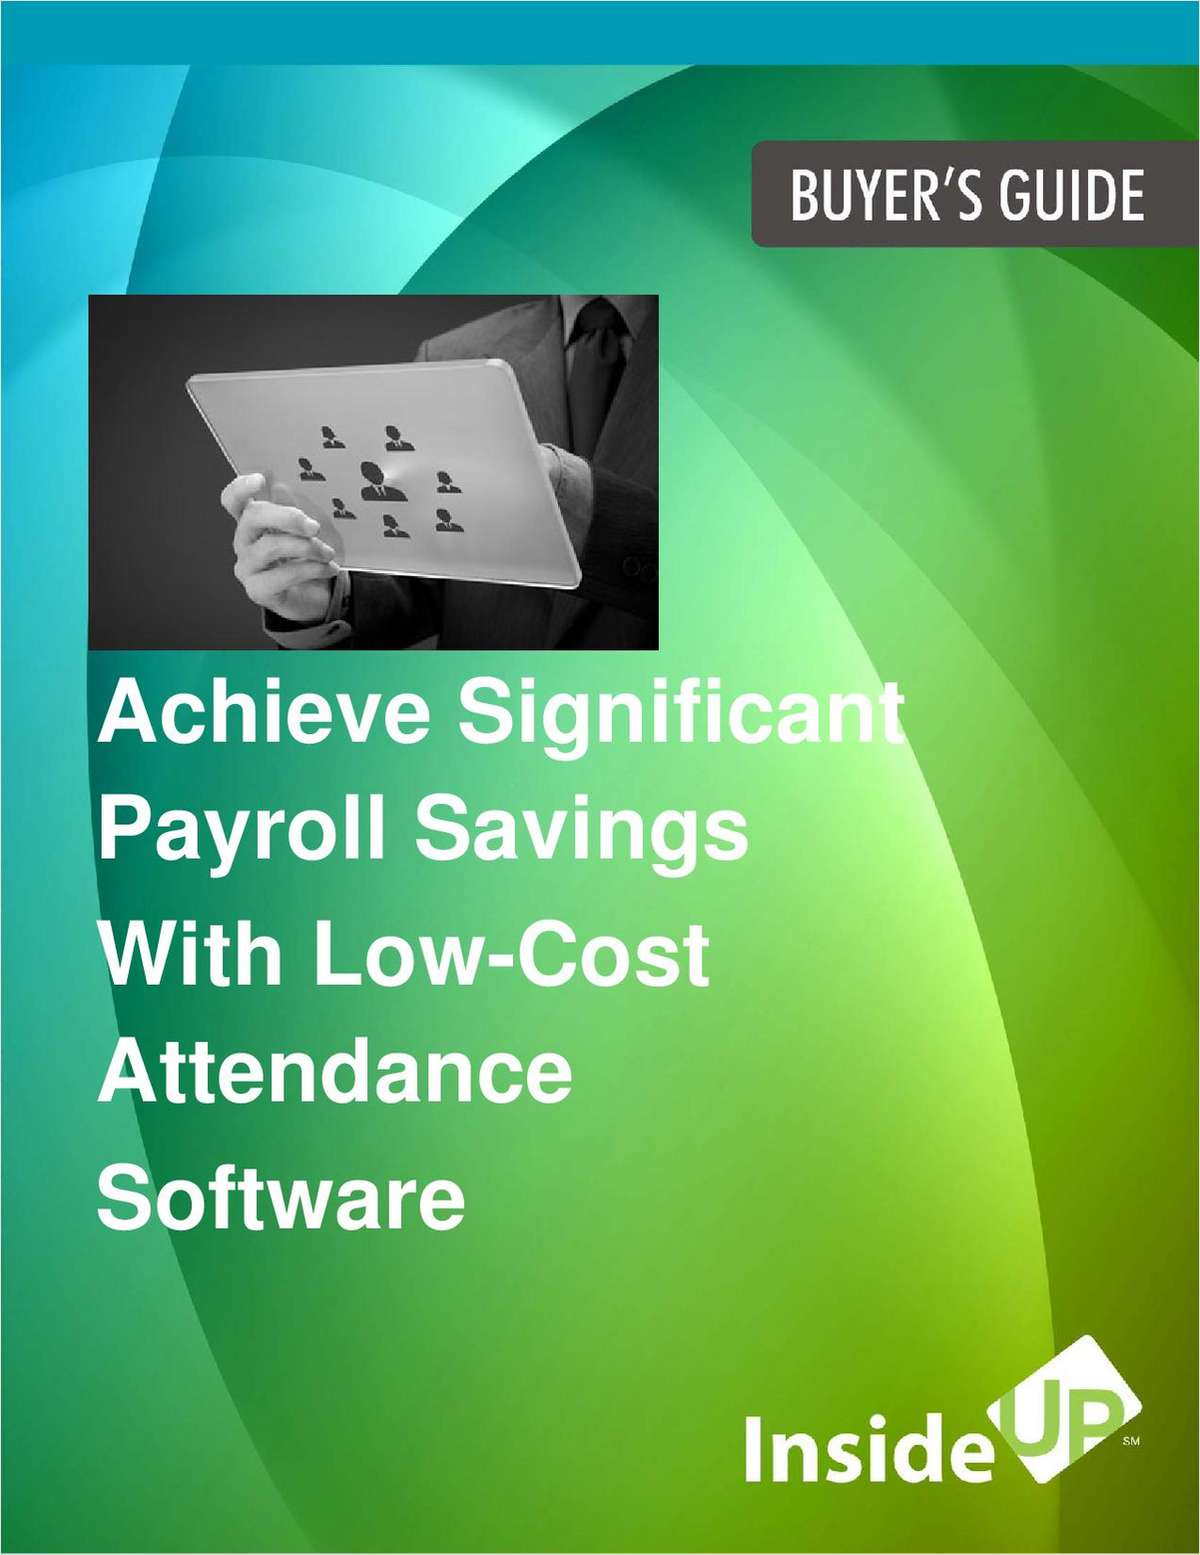 Achieve Significant Payroll Savings With Low-Cost Attendance Software